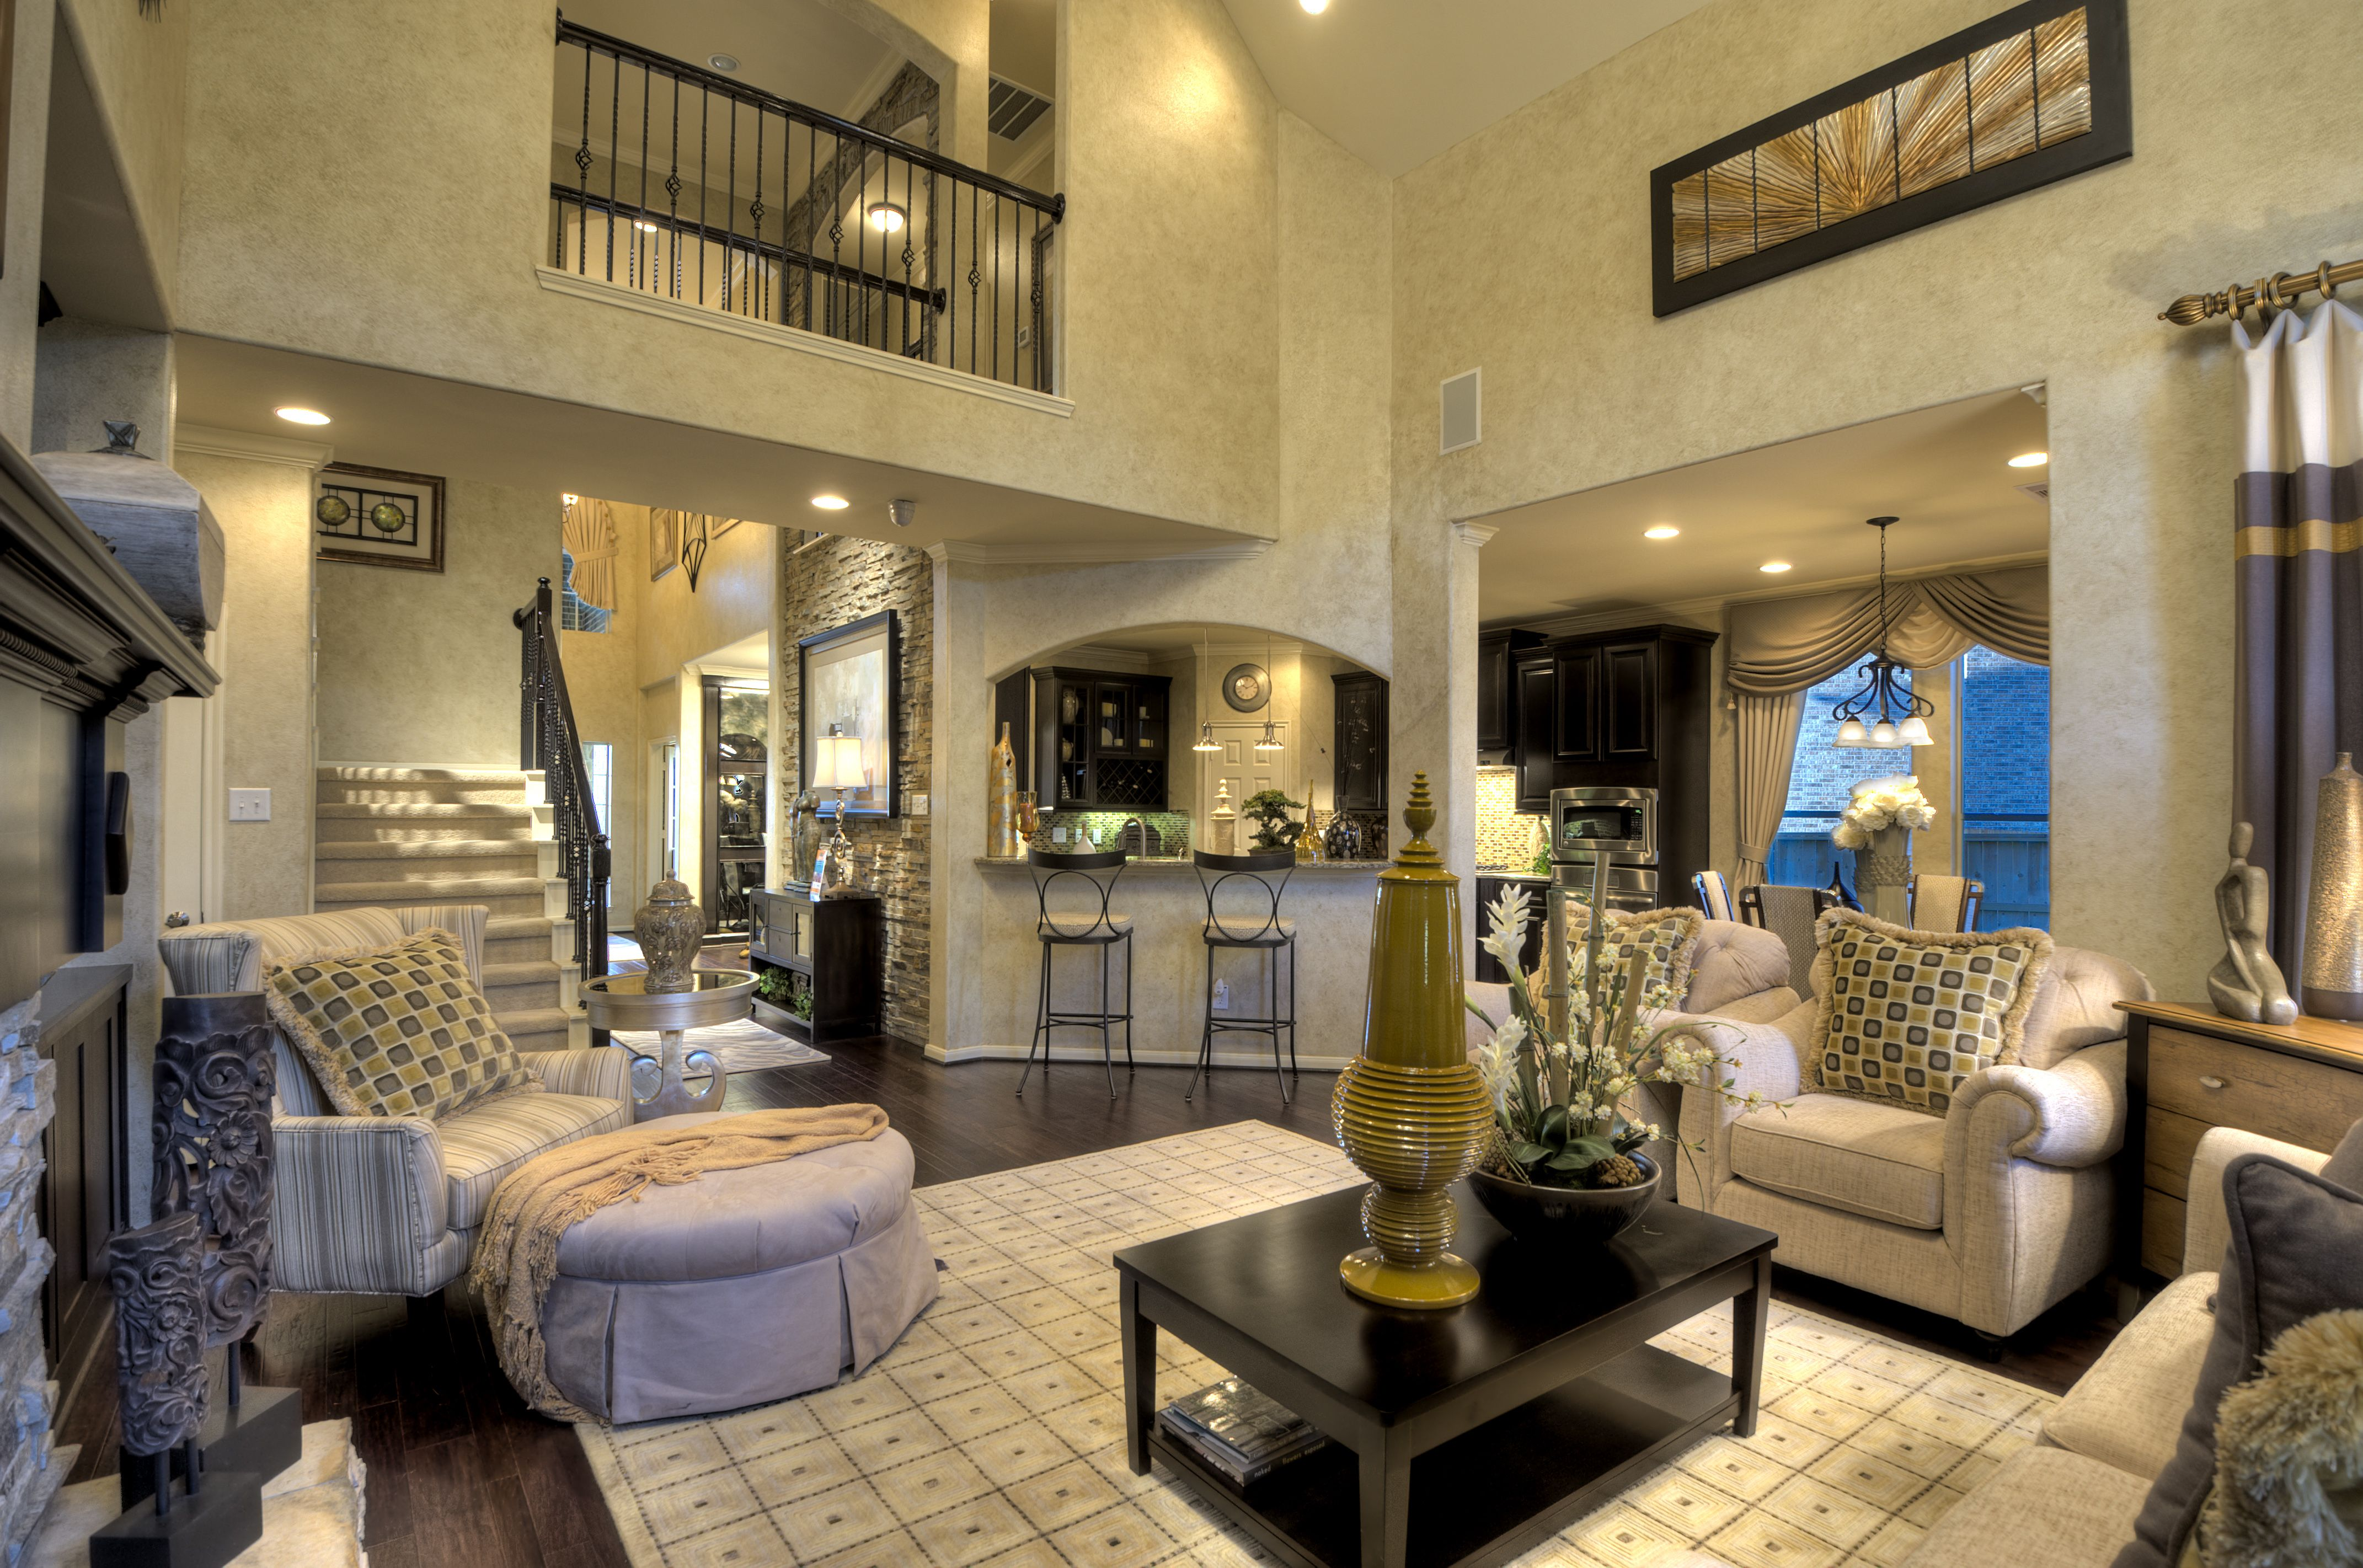 Take in the open floor plan and impressive array of